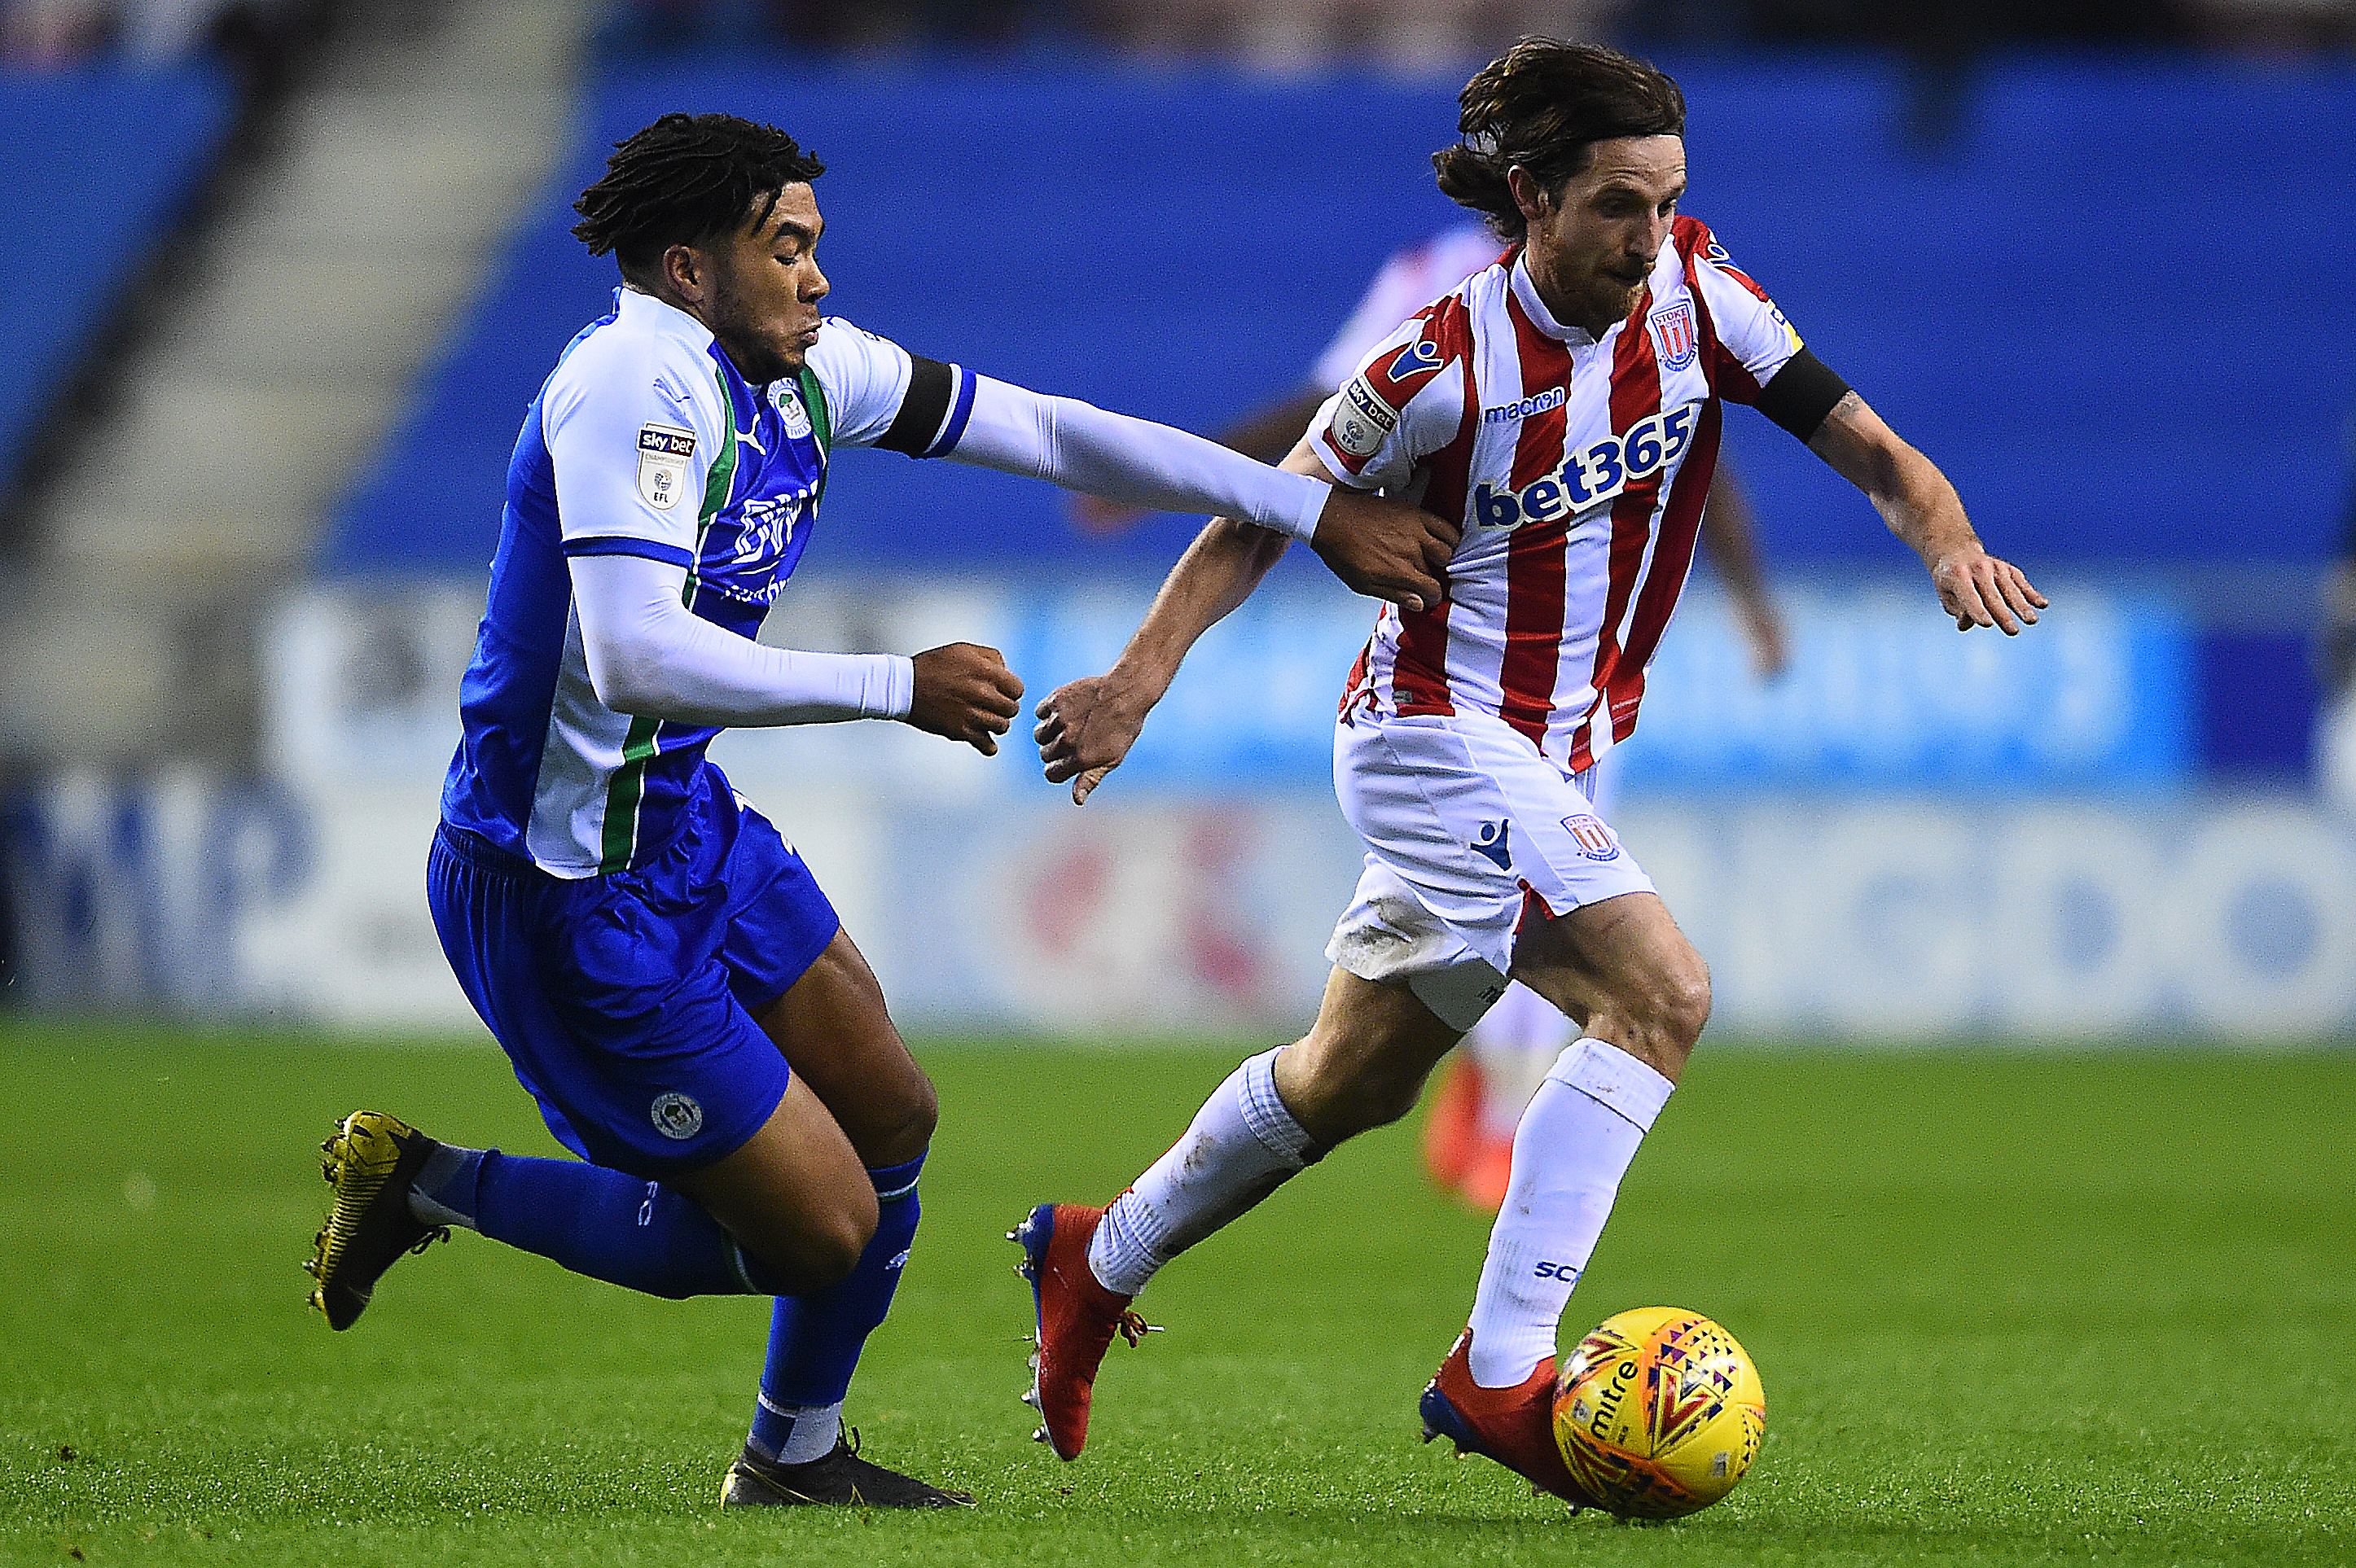 Chelsea Loan Round-up: February 19 - 25